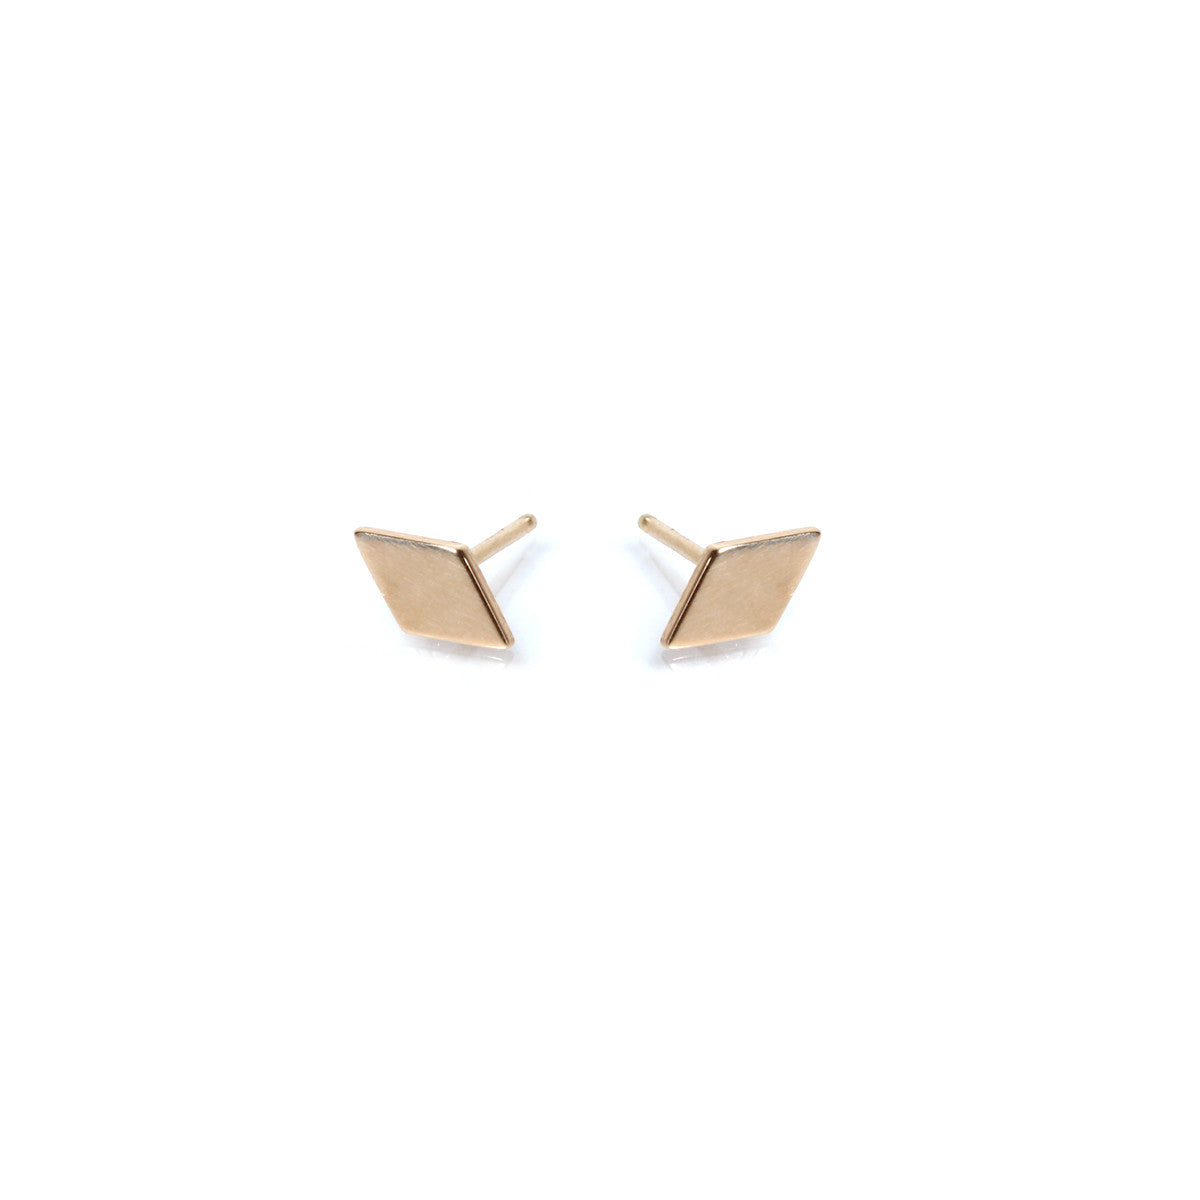 in earrings on cutout studs silver stud shape shaped original luulla product diamond